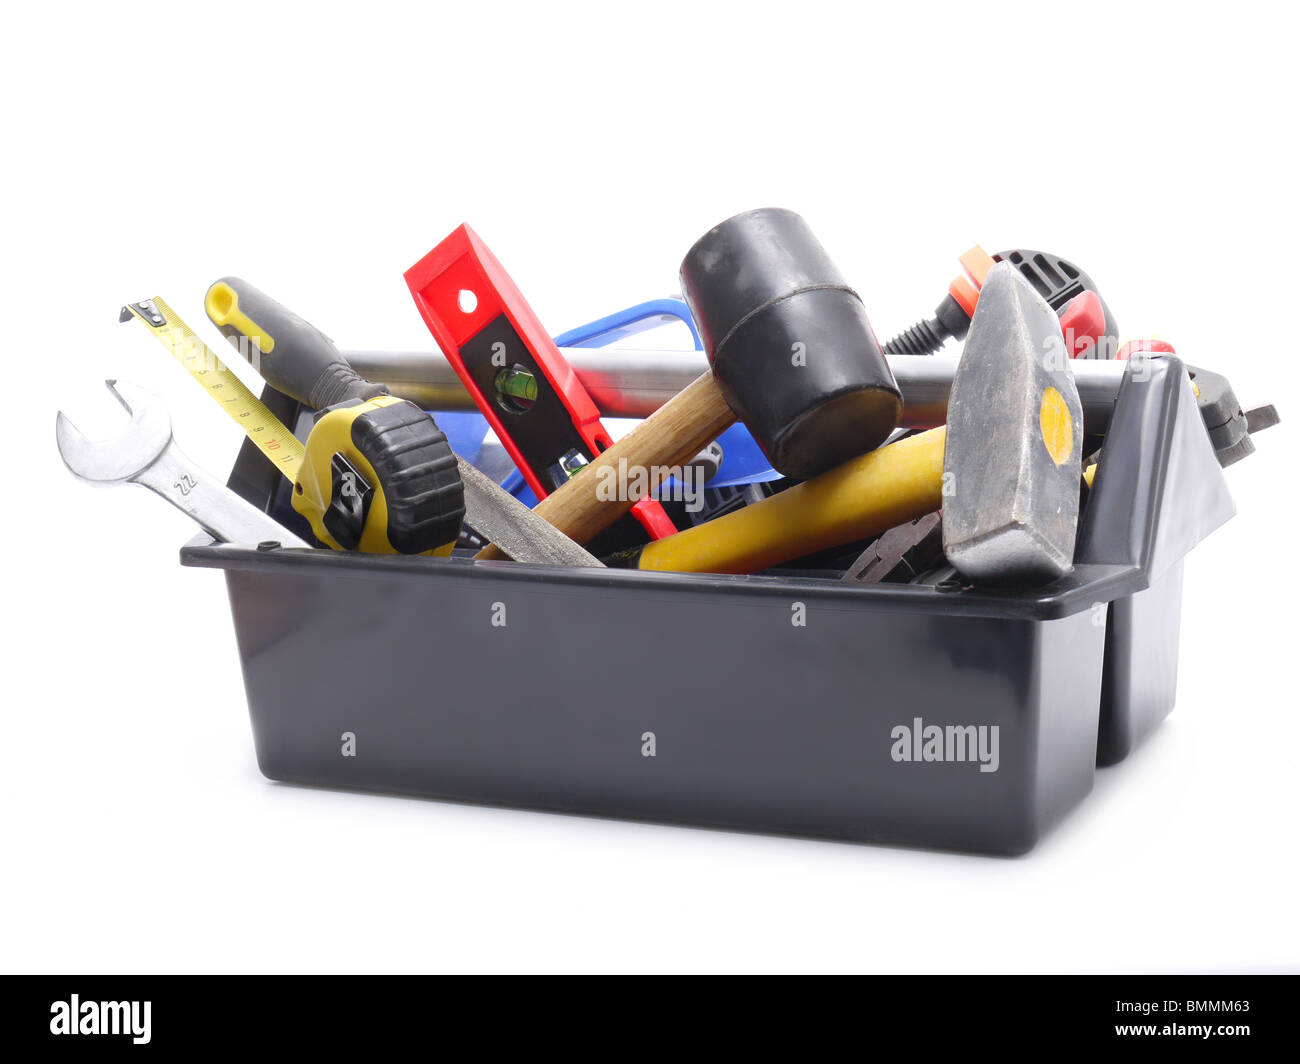 Plastic black toolbox with tools over white background - Stock Image